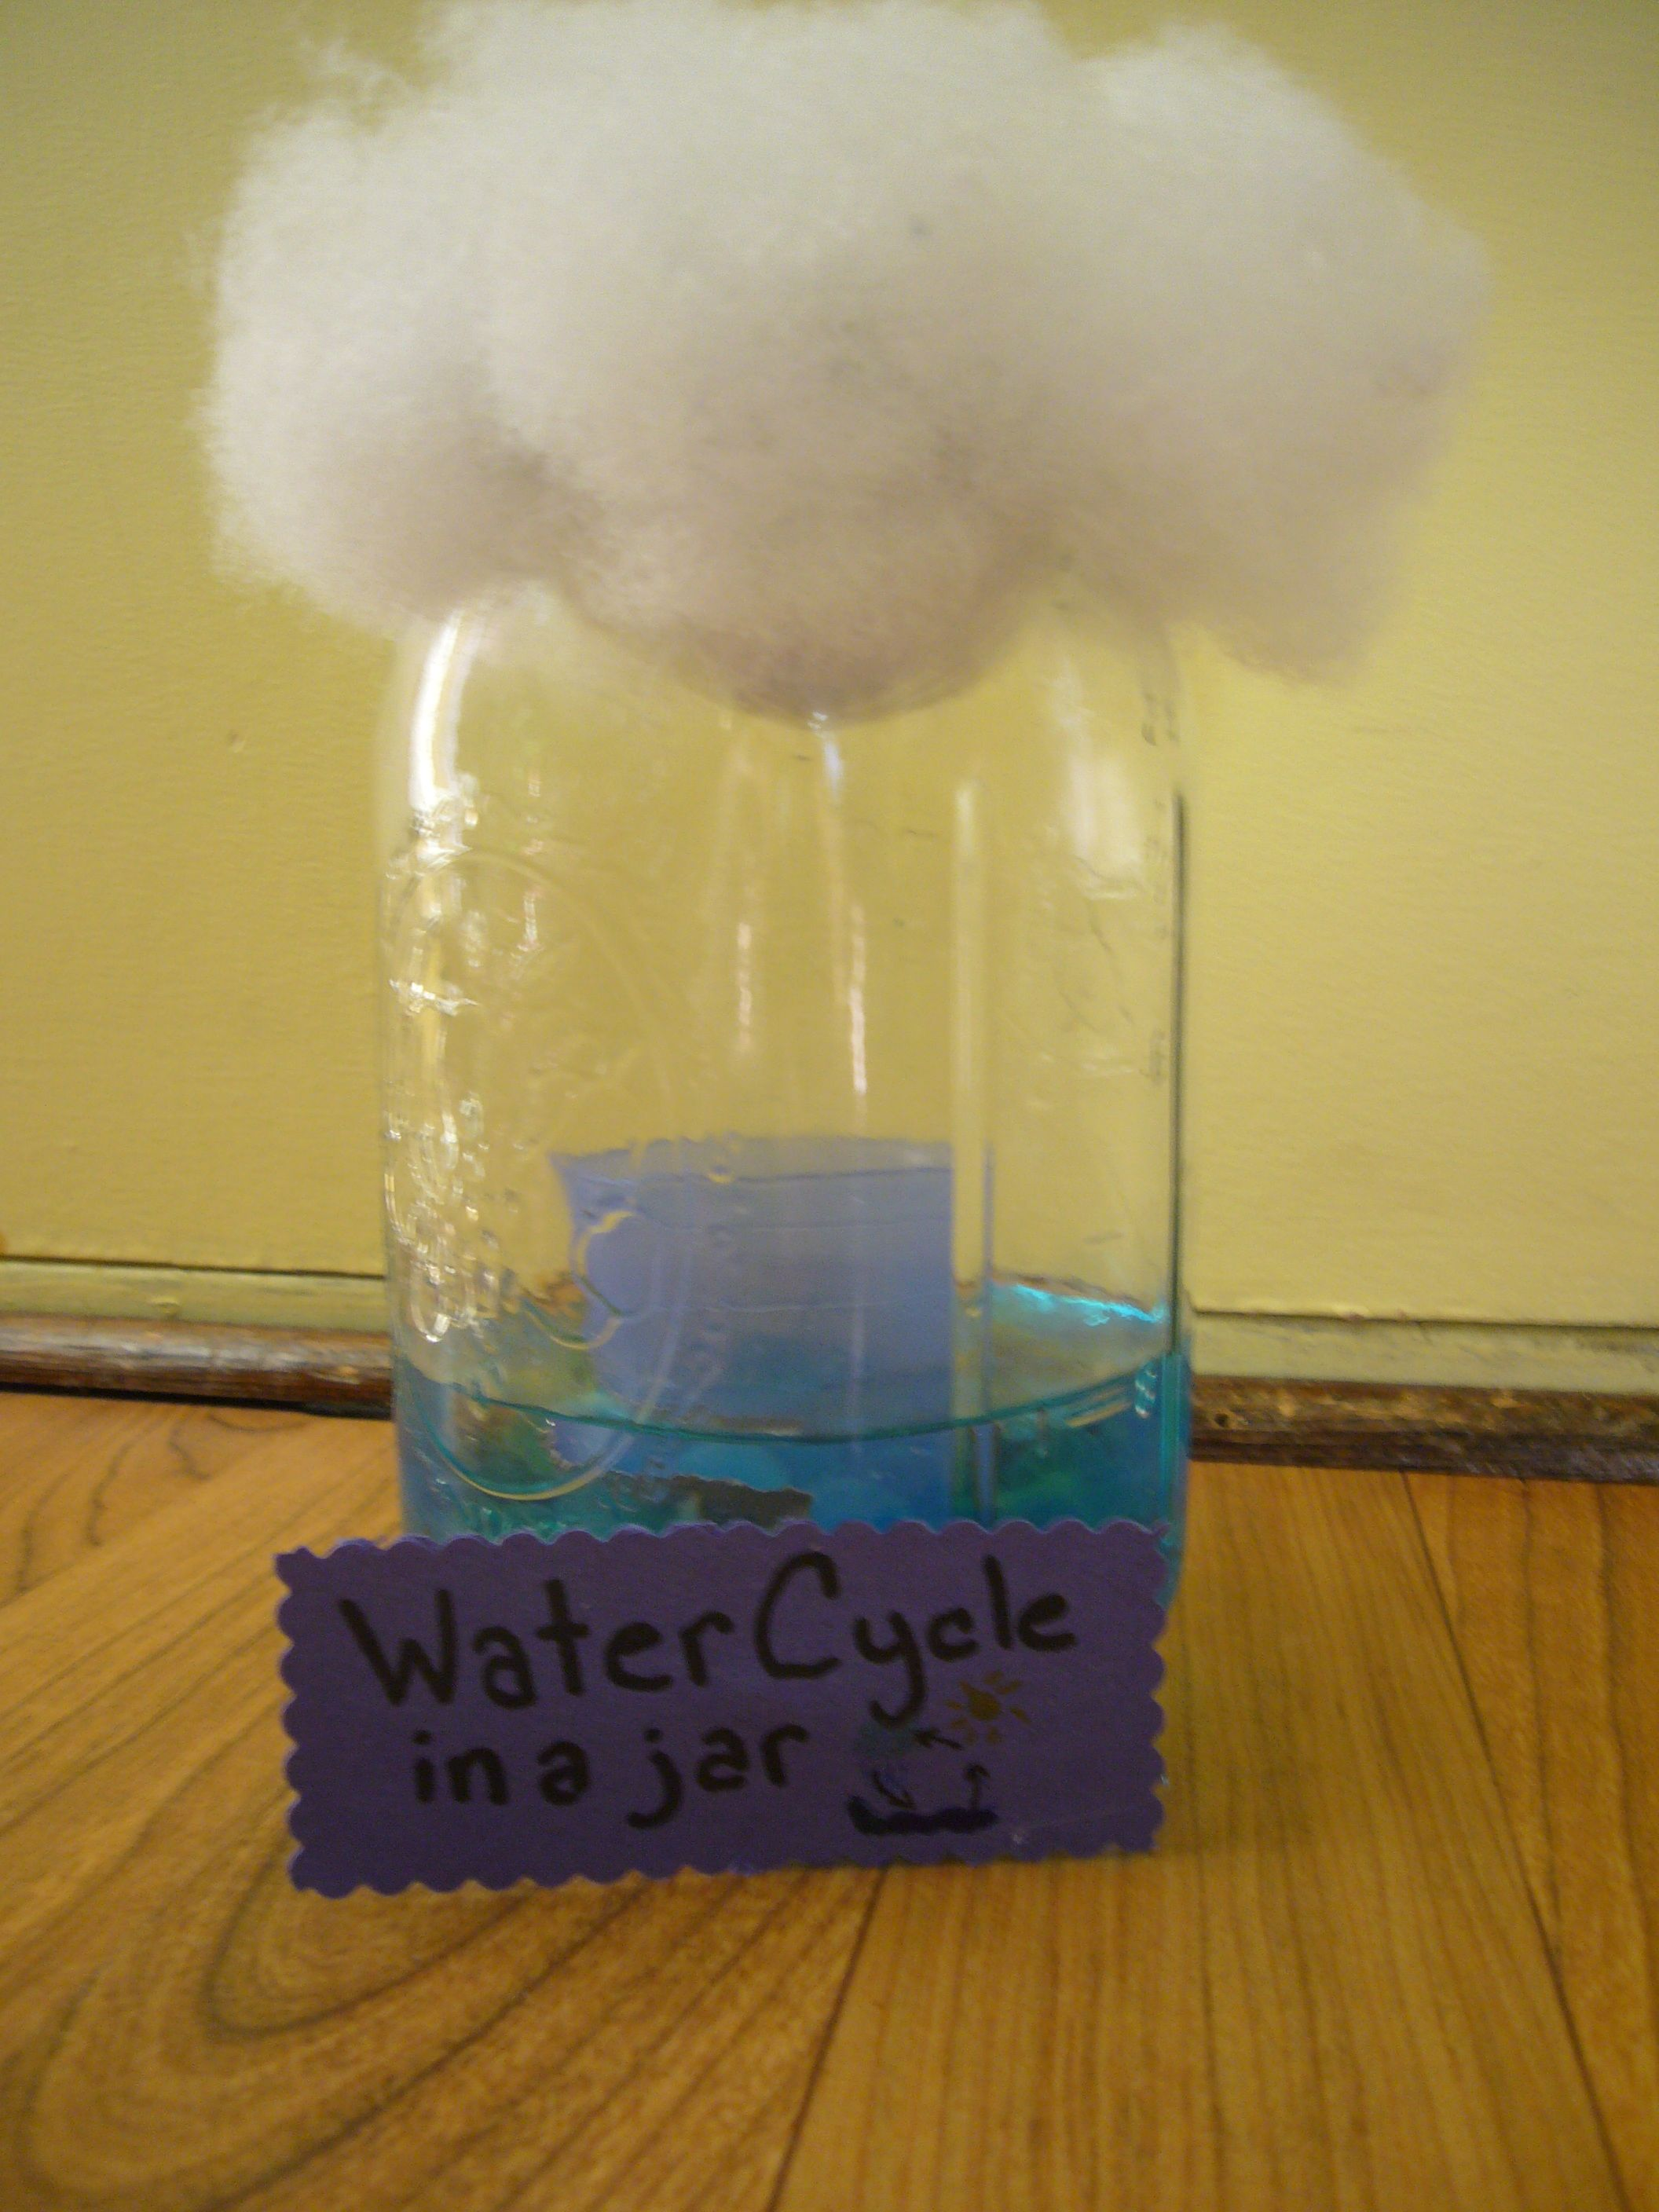 Water Cycle In A Jar Fill Up 1 4 Of The With